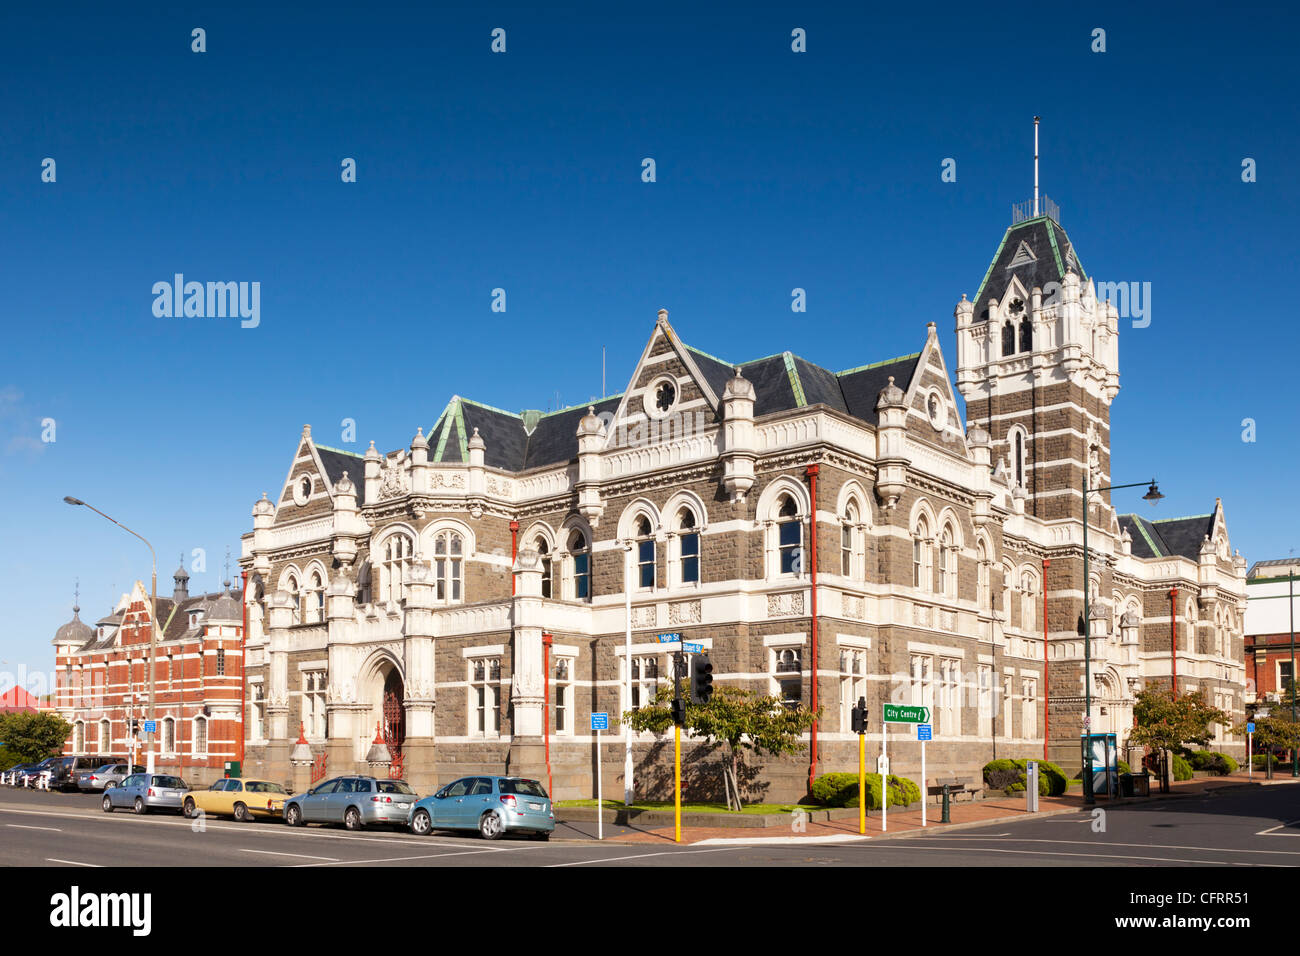 Dunedin Law Court, and beside it on the left, the city's former prison. - Stock Image